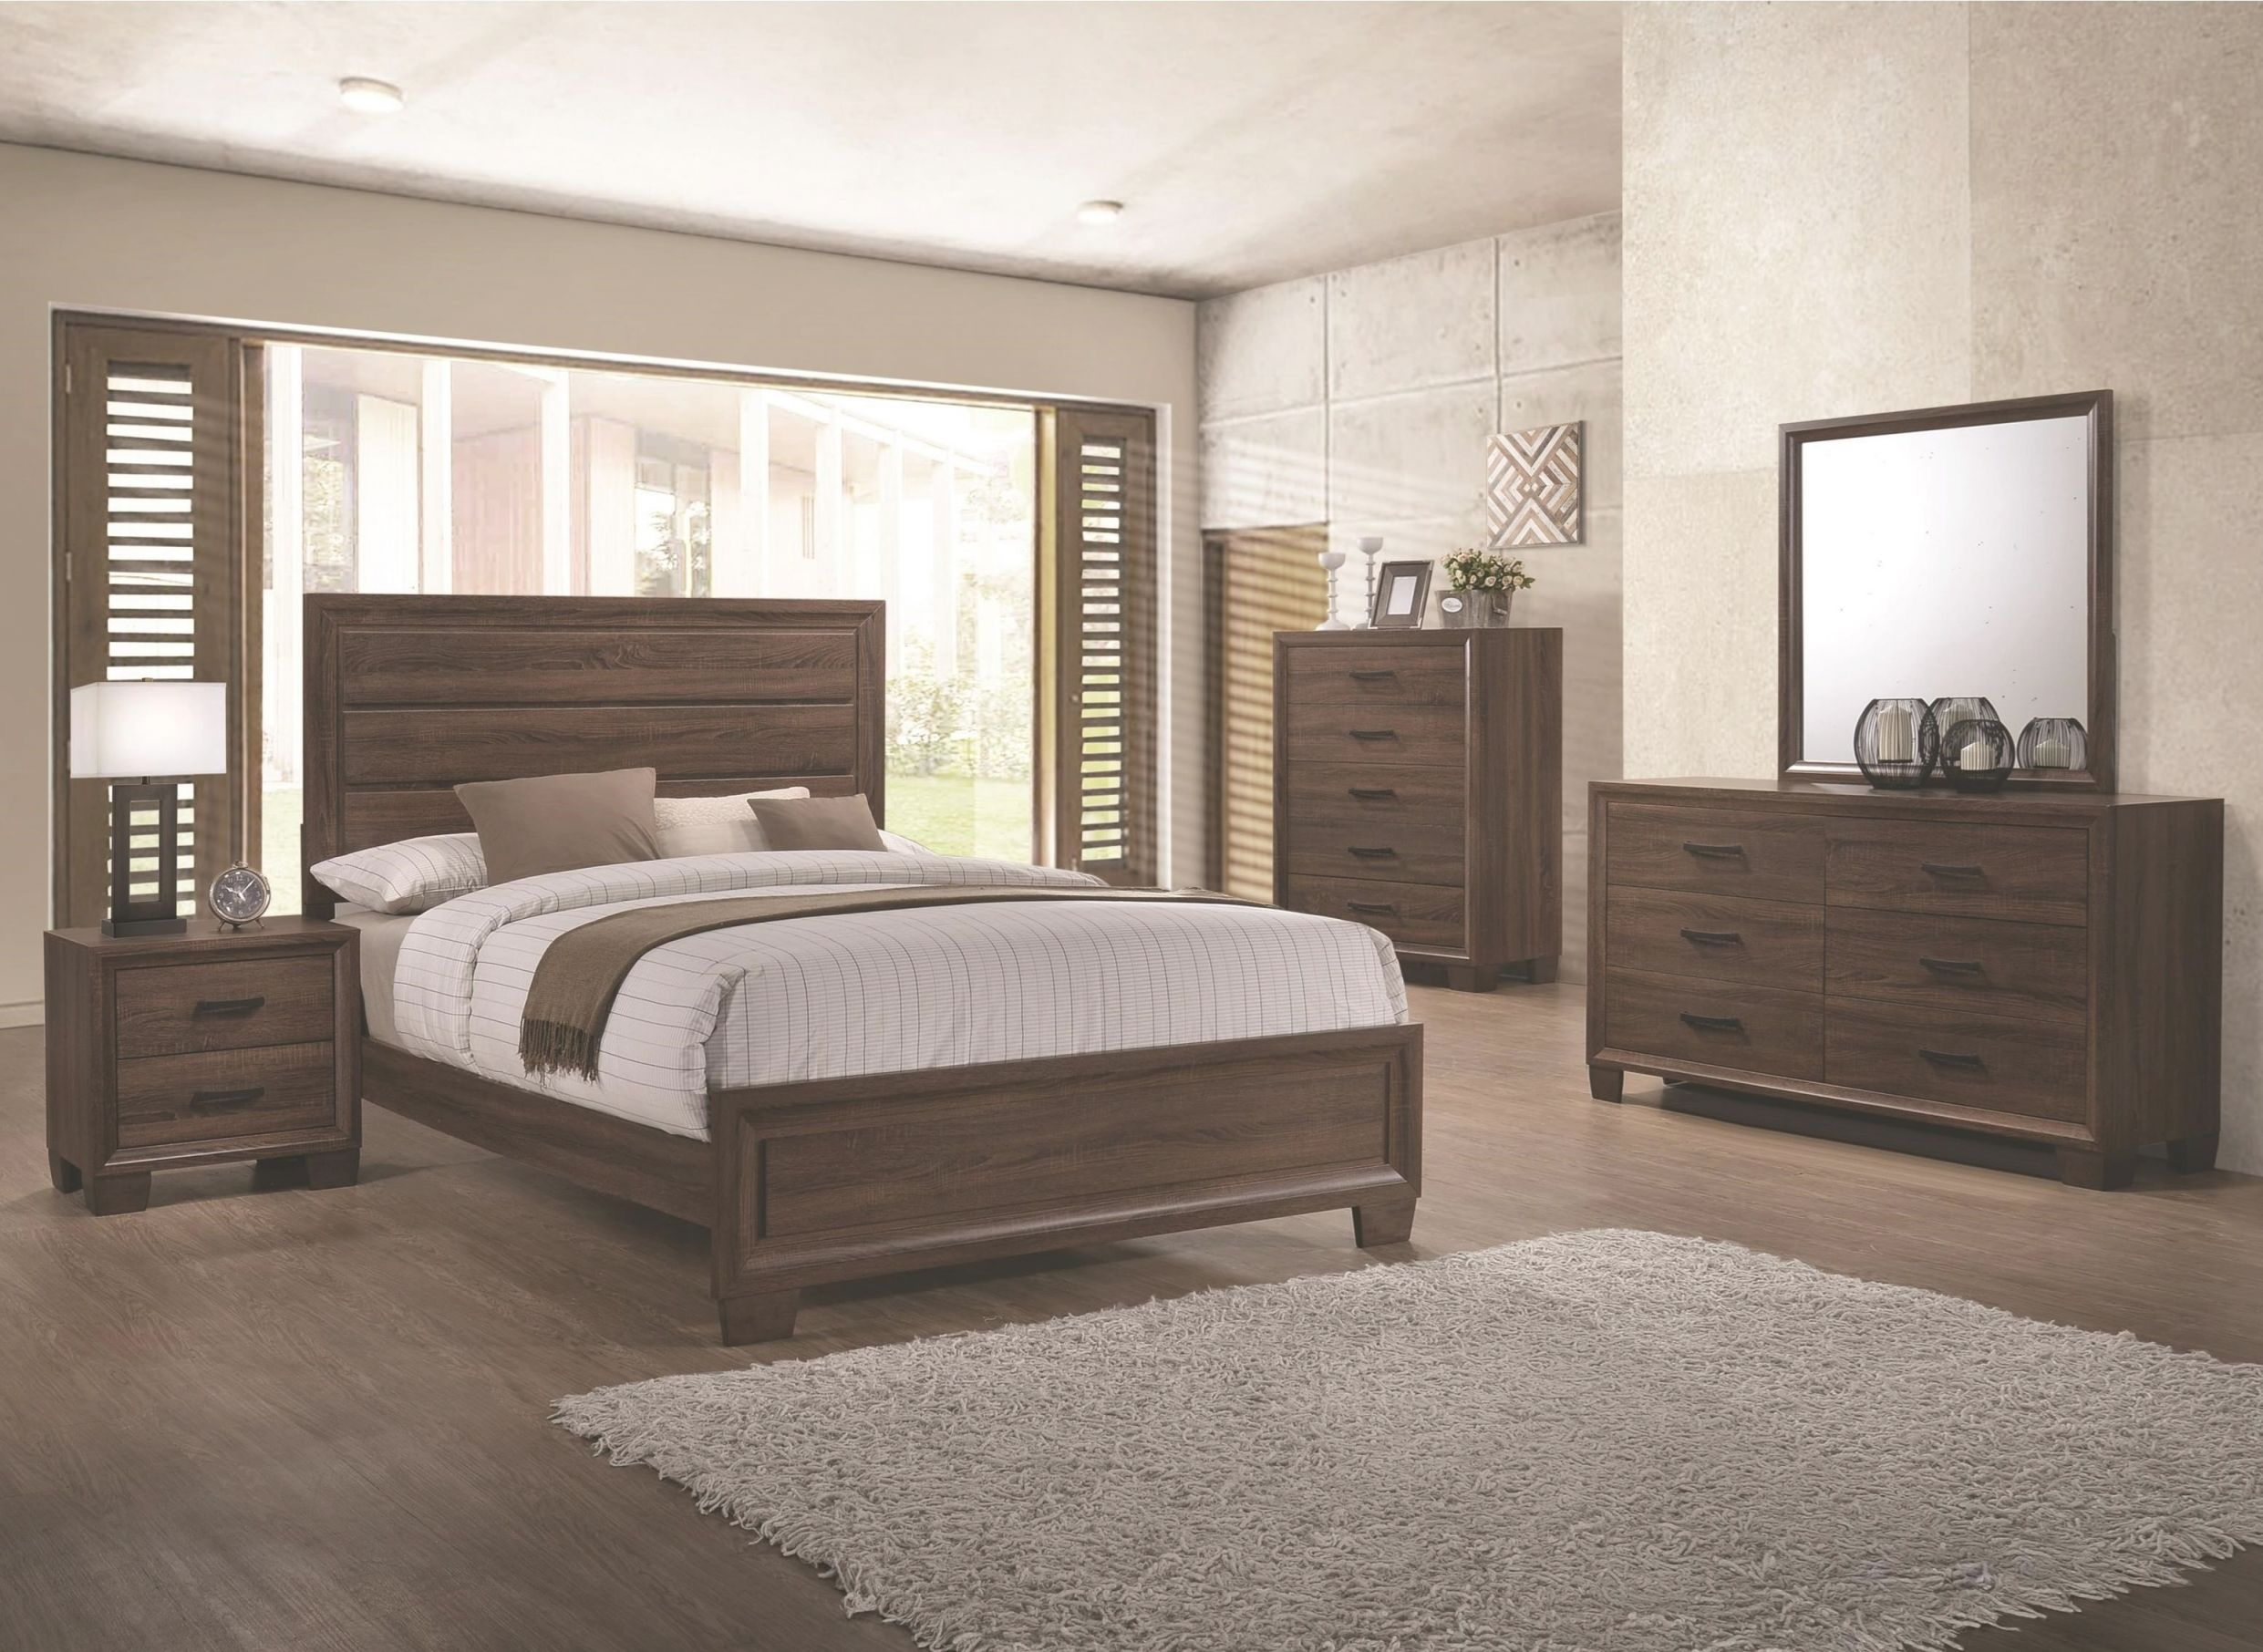 Bedroom Furniture Medium Brown Queen Size Bed Panel Unique 4Pc Set Matching  Dresser Mirror Nightstand Modern with regard to Beautiful Queen Size Bedroom Furniture Sets